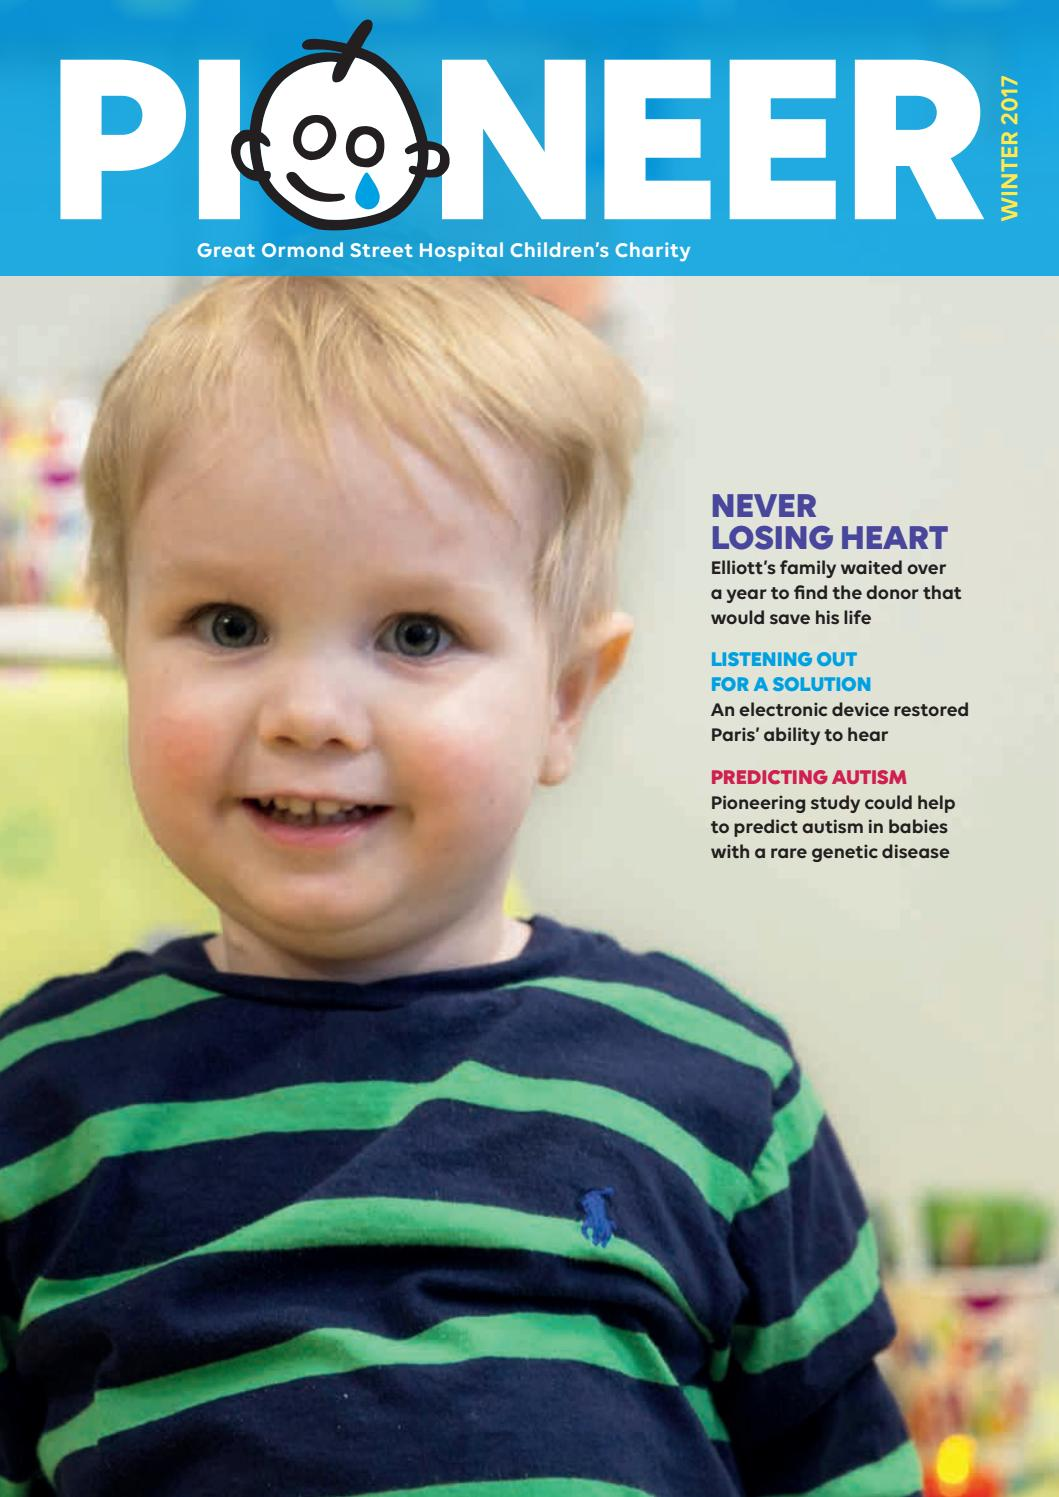 Simple Hearing Test May Predict Autism >> Pioneer Winter 2017 By Great Ormond Street Hospital Children S